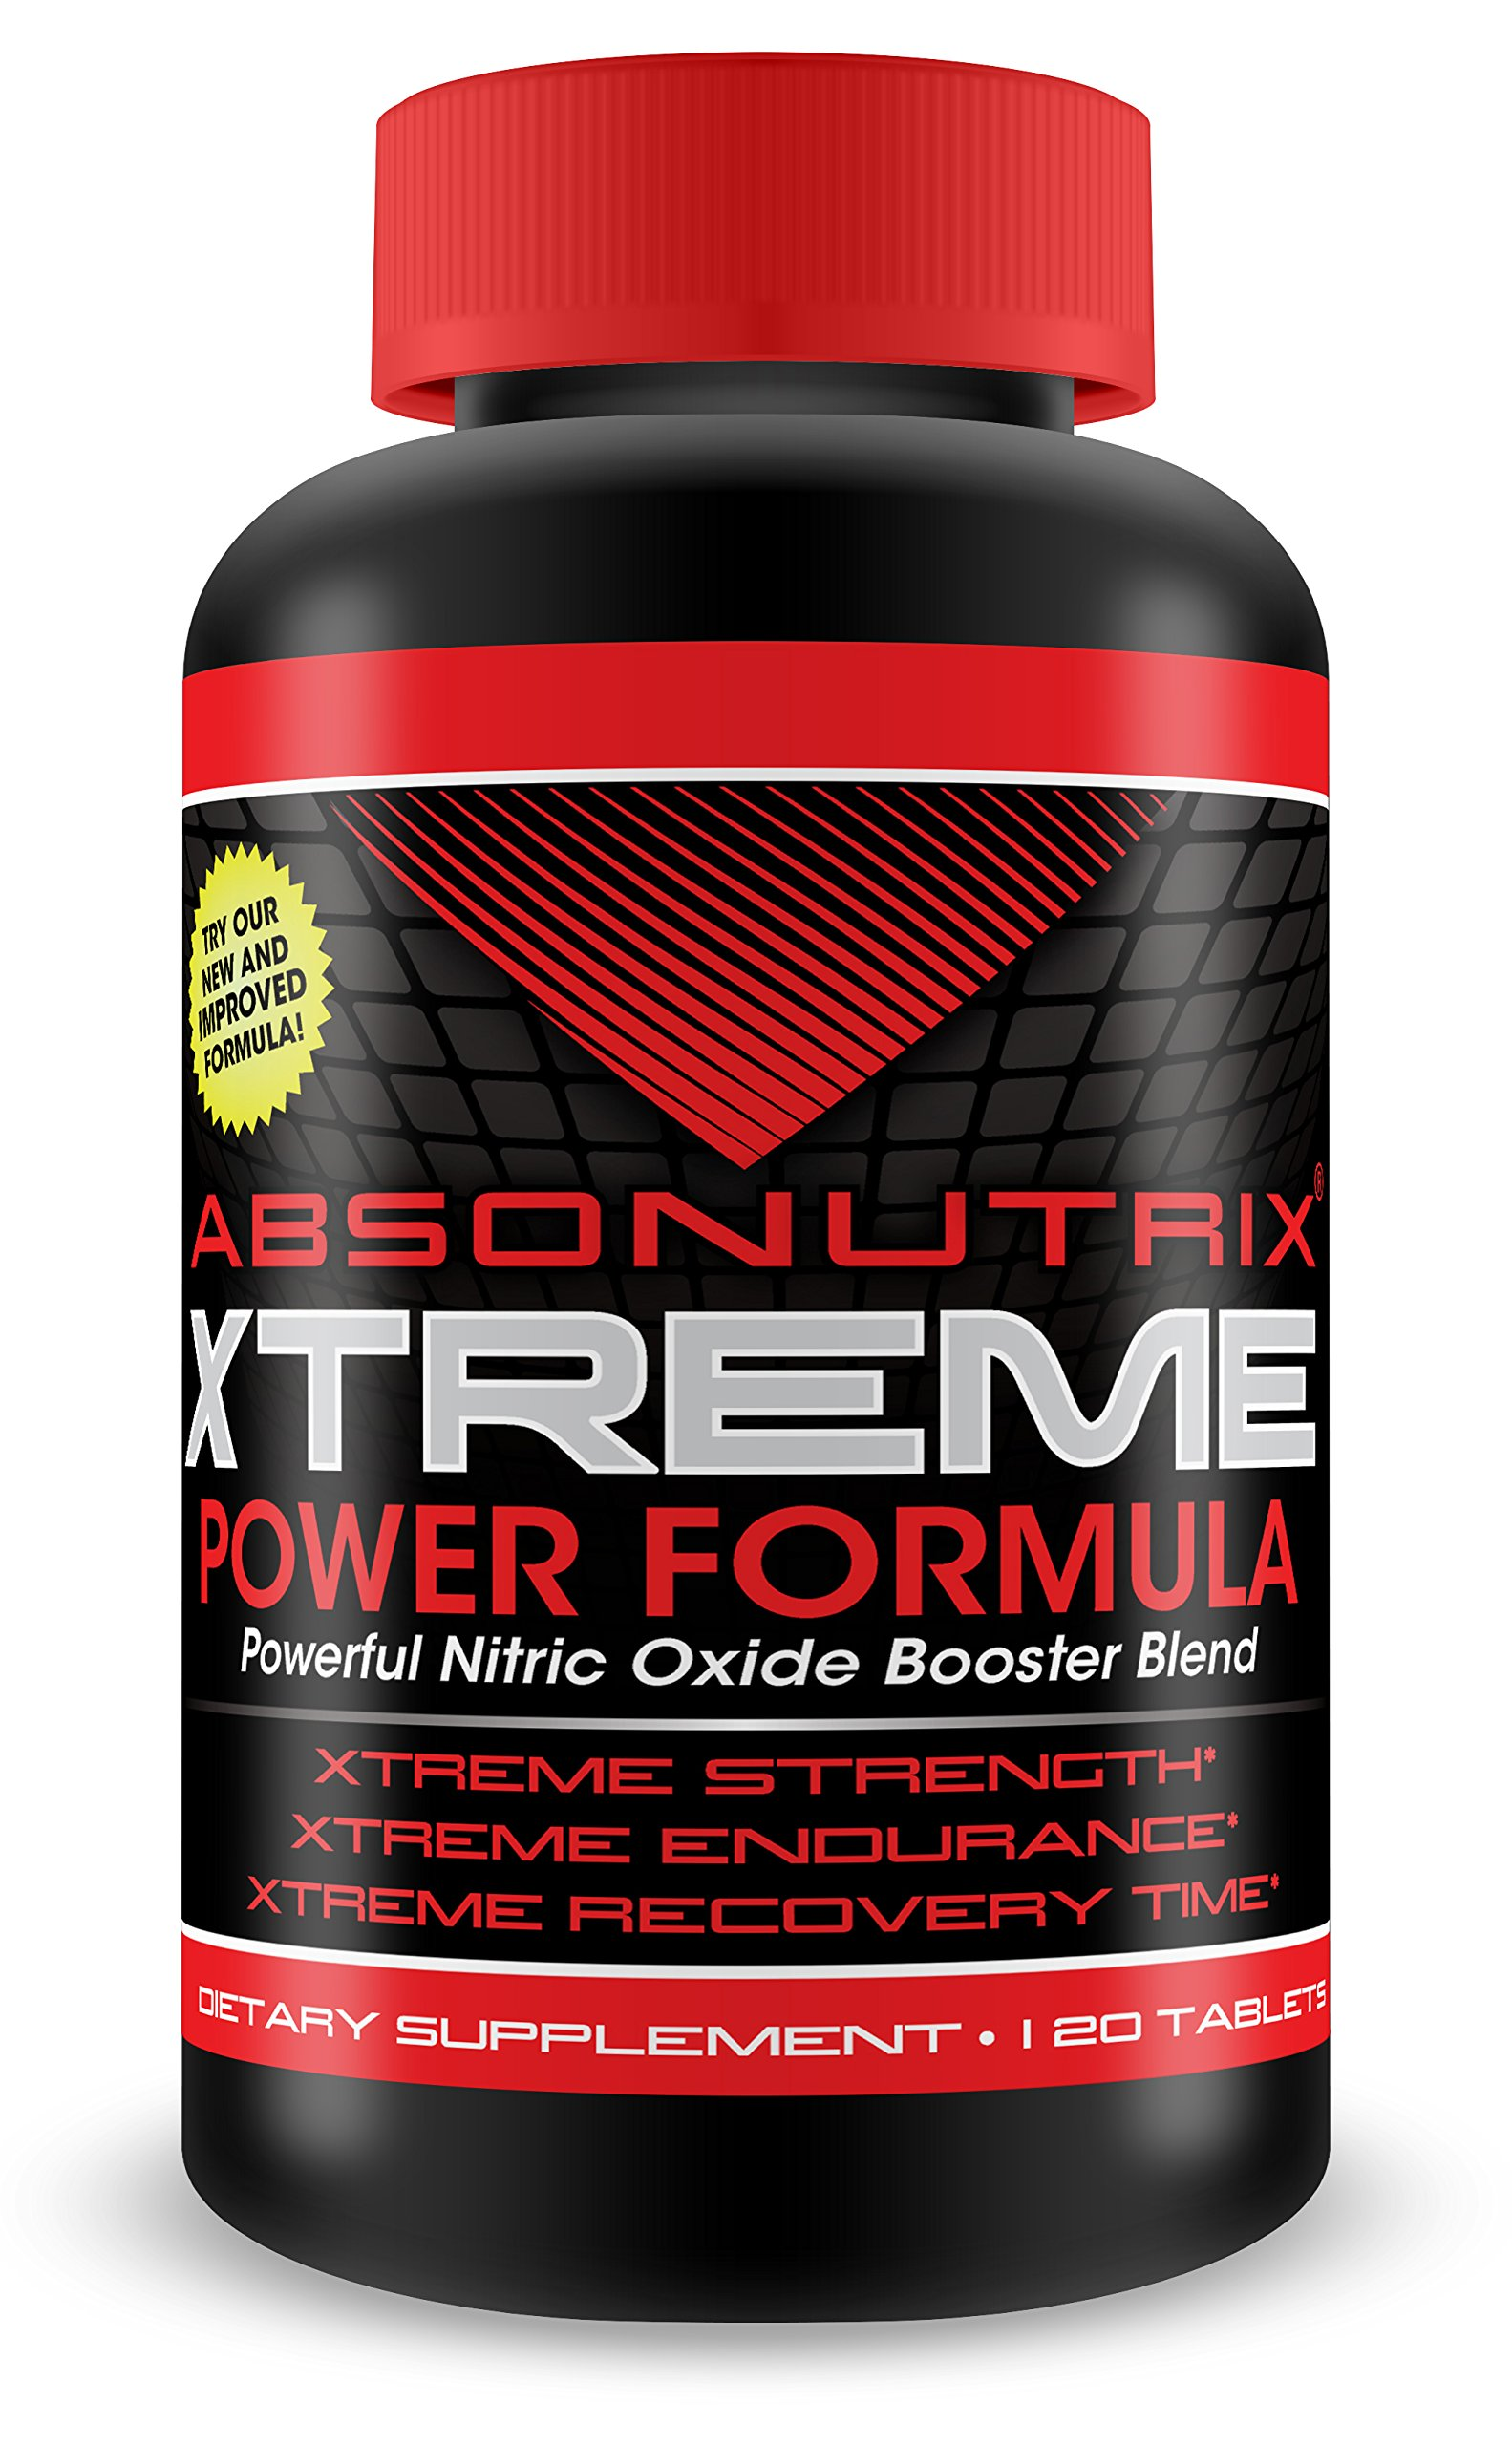 Absonutrix Extreme nitric oxide power blend - 3000mg of Power - 120 Tablets! Xtreme Strength -Xtreme Endurance - Xtreme Recovery Time - 60 Day Money Back Guarantee!!!